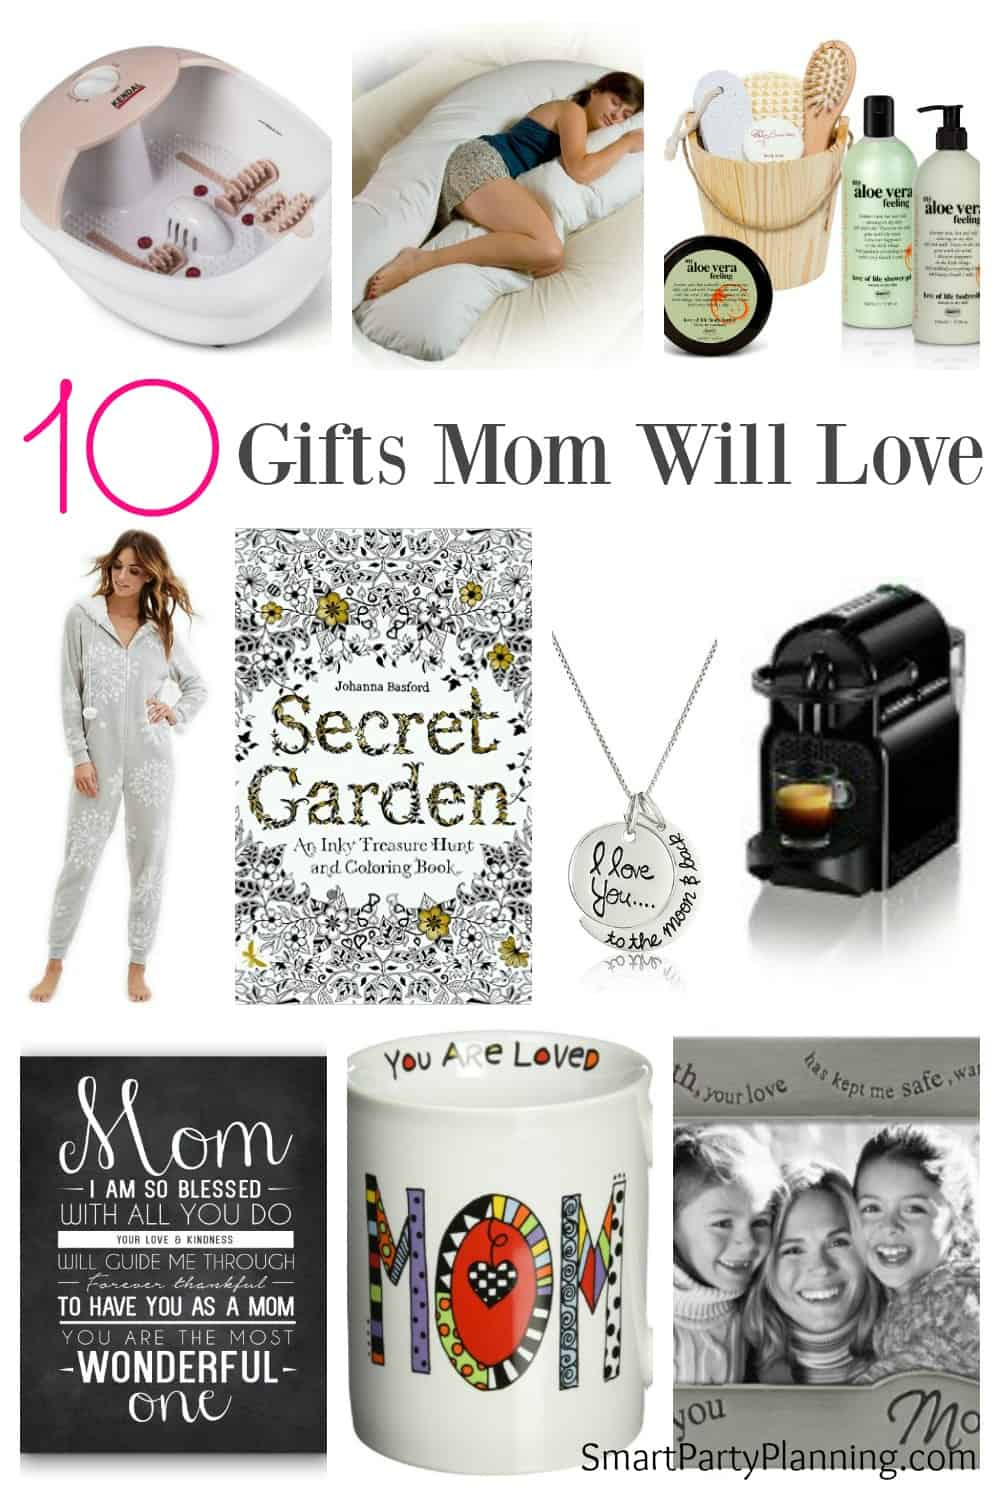 Are you looking for a gift for mom for mother's day or her birthday? Giving gifts mom will love could be easier than you think. Perhaps some subtle hints need to be left around the house for gifts for yourself? Print out and circle the items you like, and leave somewhere convenient in the home for all to see. Organizing a gift could be easier than you think.